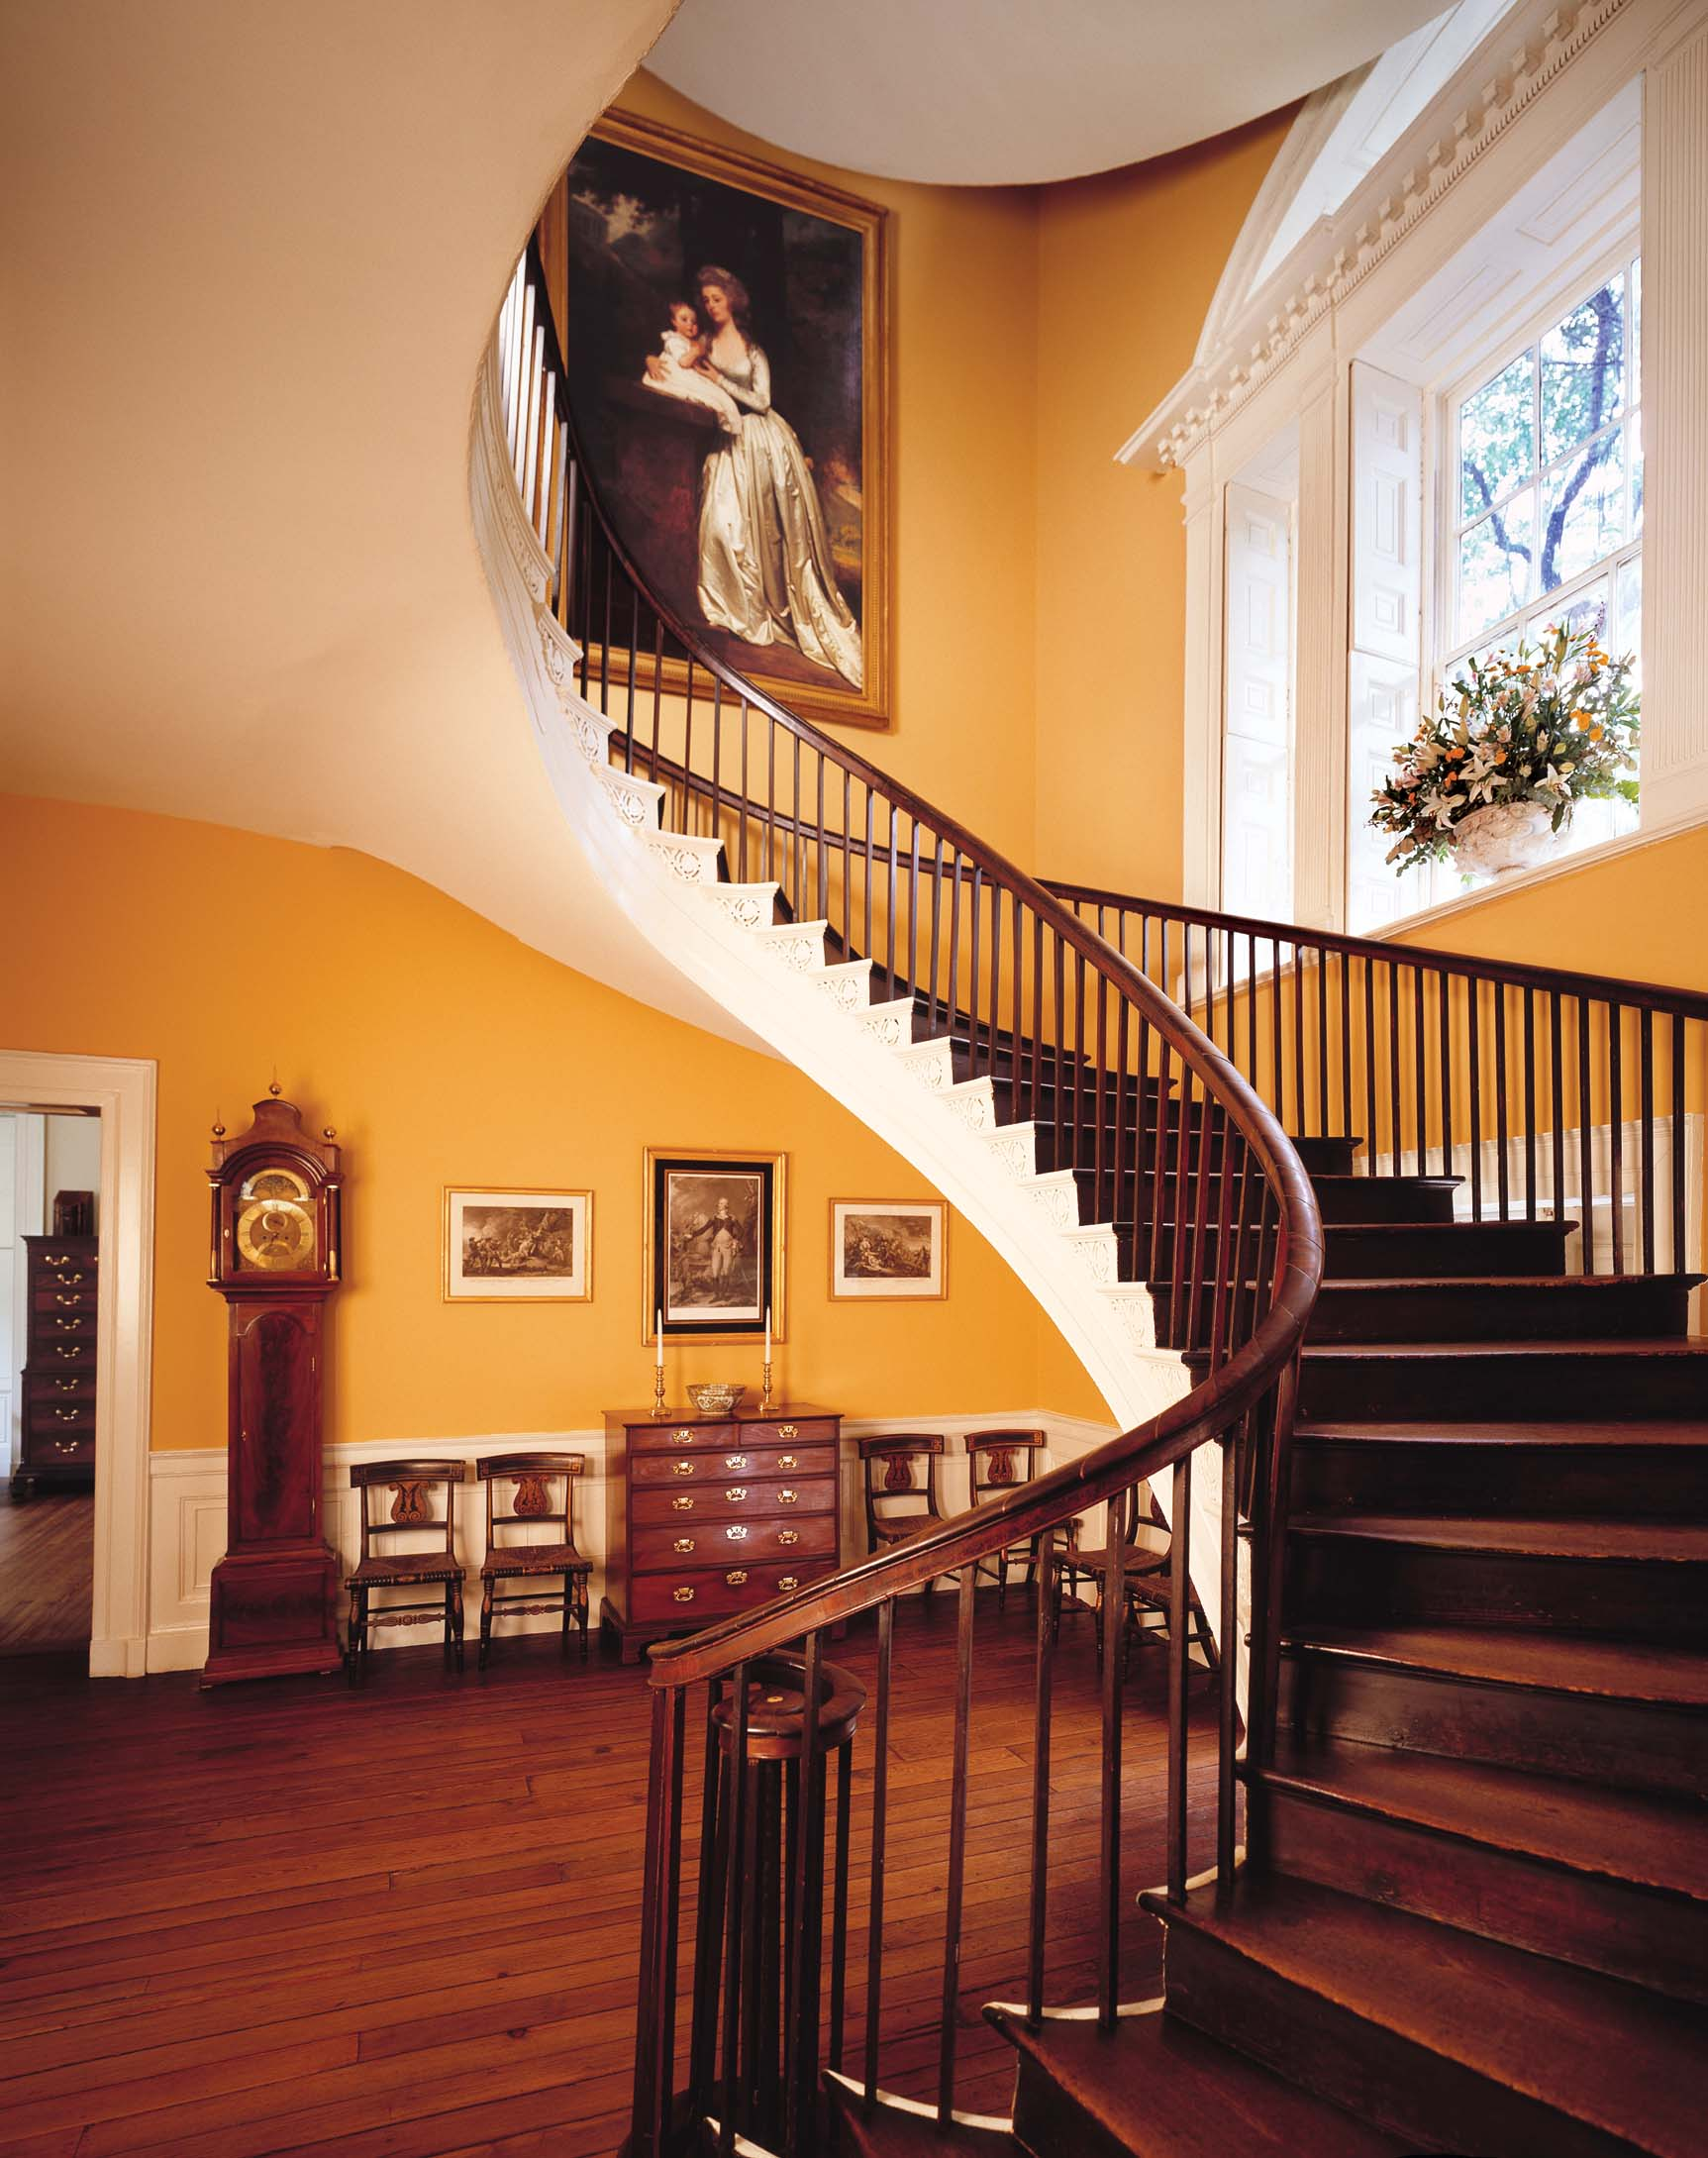 View of the only three story cantilever elliptical staircase in the United States with portrait of Mary Rutledge Smith by George Romney